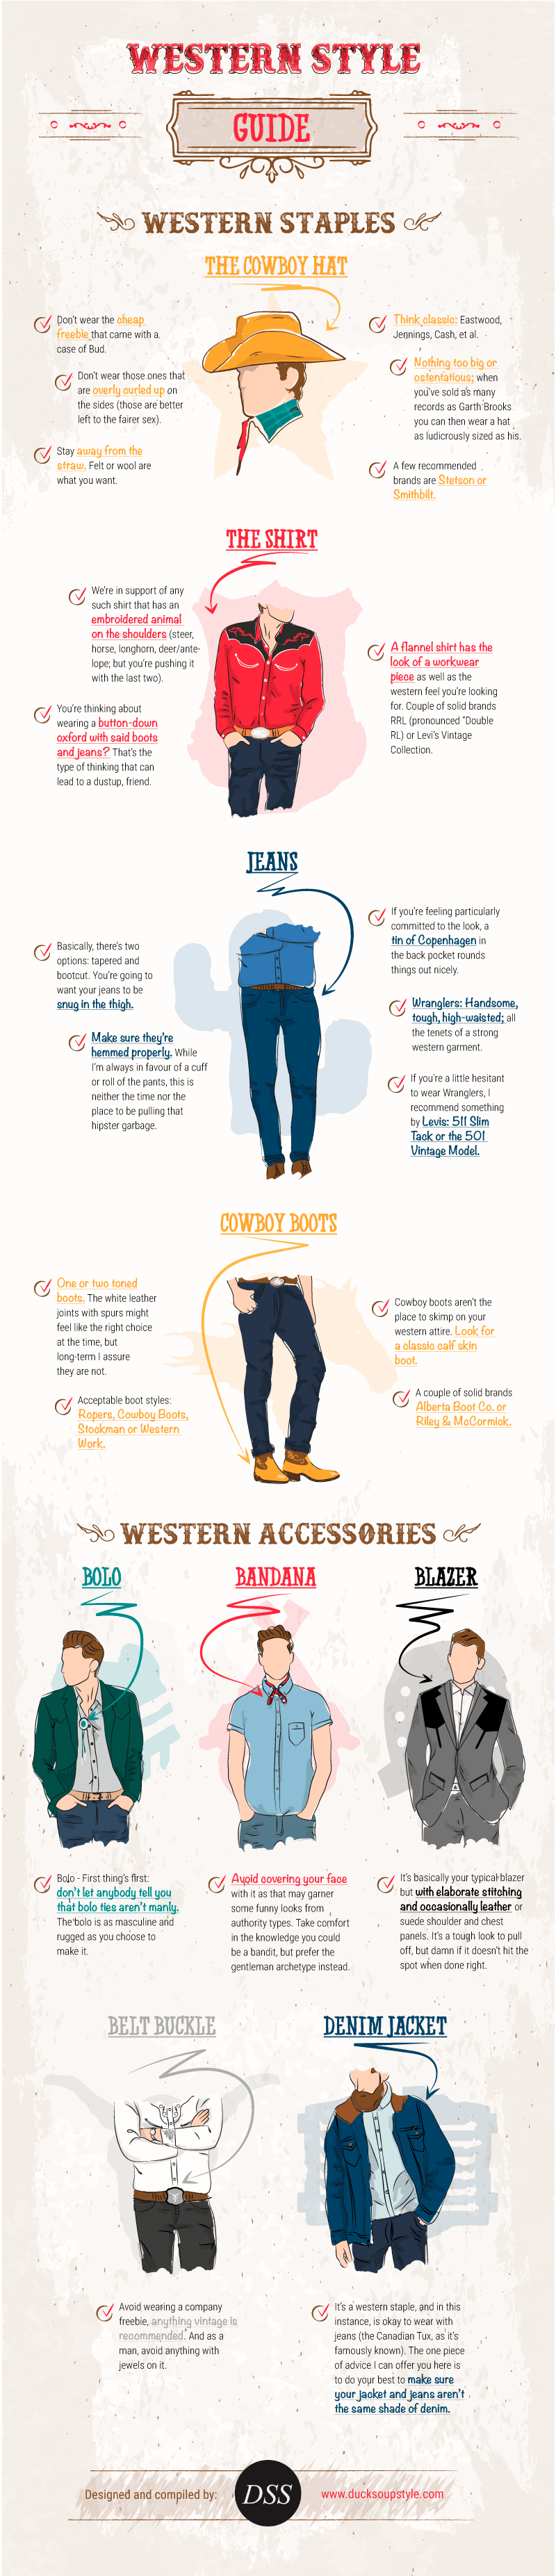 western_style_guide